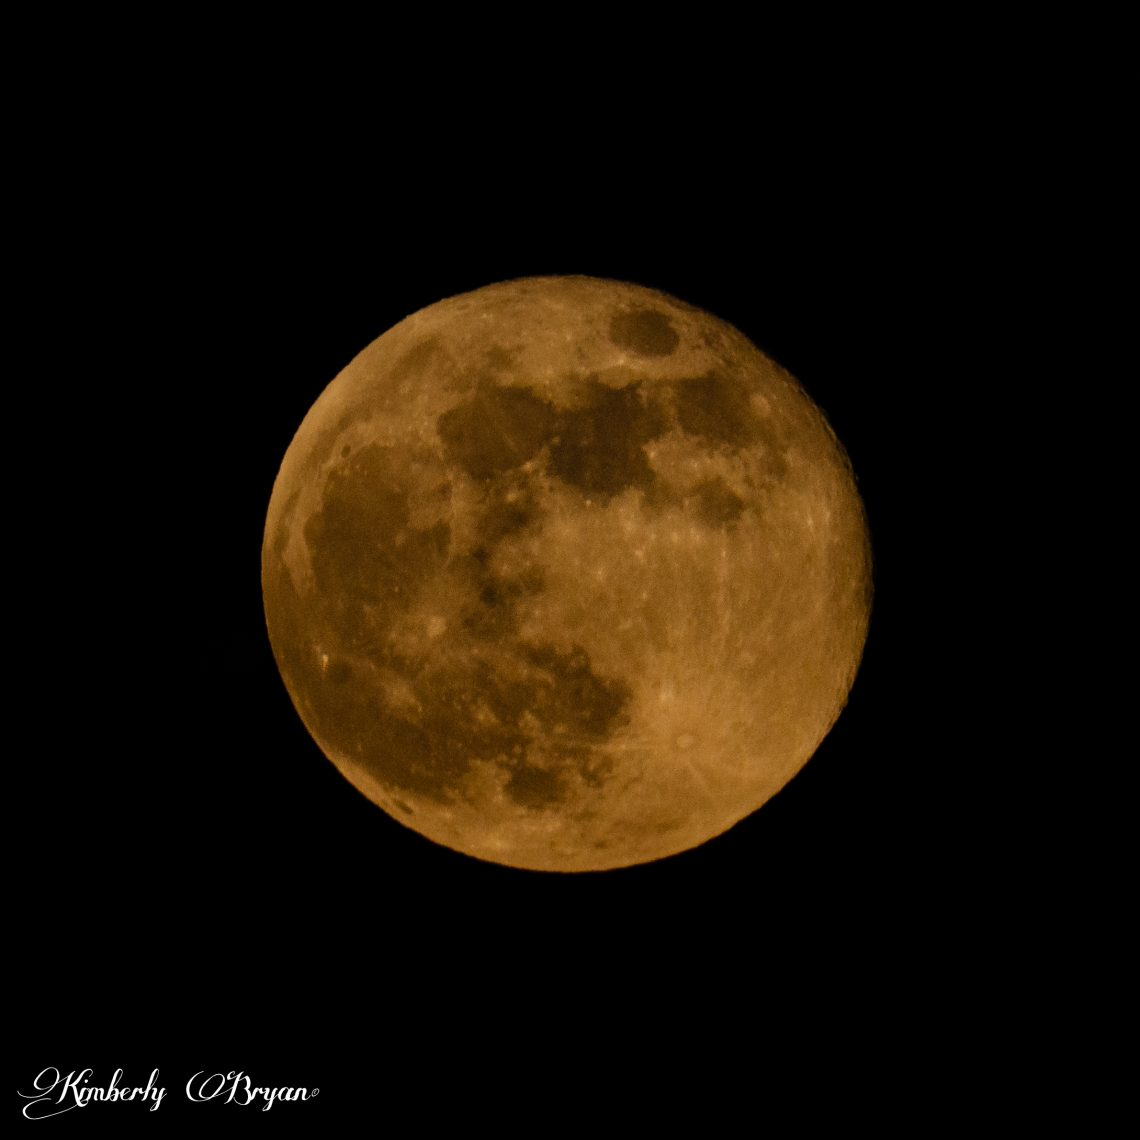 You are looking at the Super Full May Flower moon. This super moon is supposedly the last super of the year. While many will disagree, we shall find out as the year goes. The May moon was big, orange and beautiful.